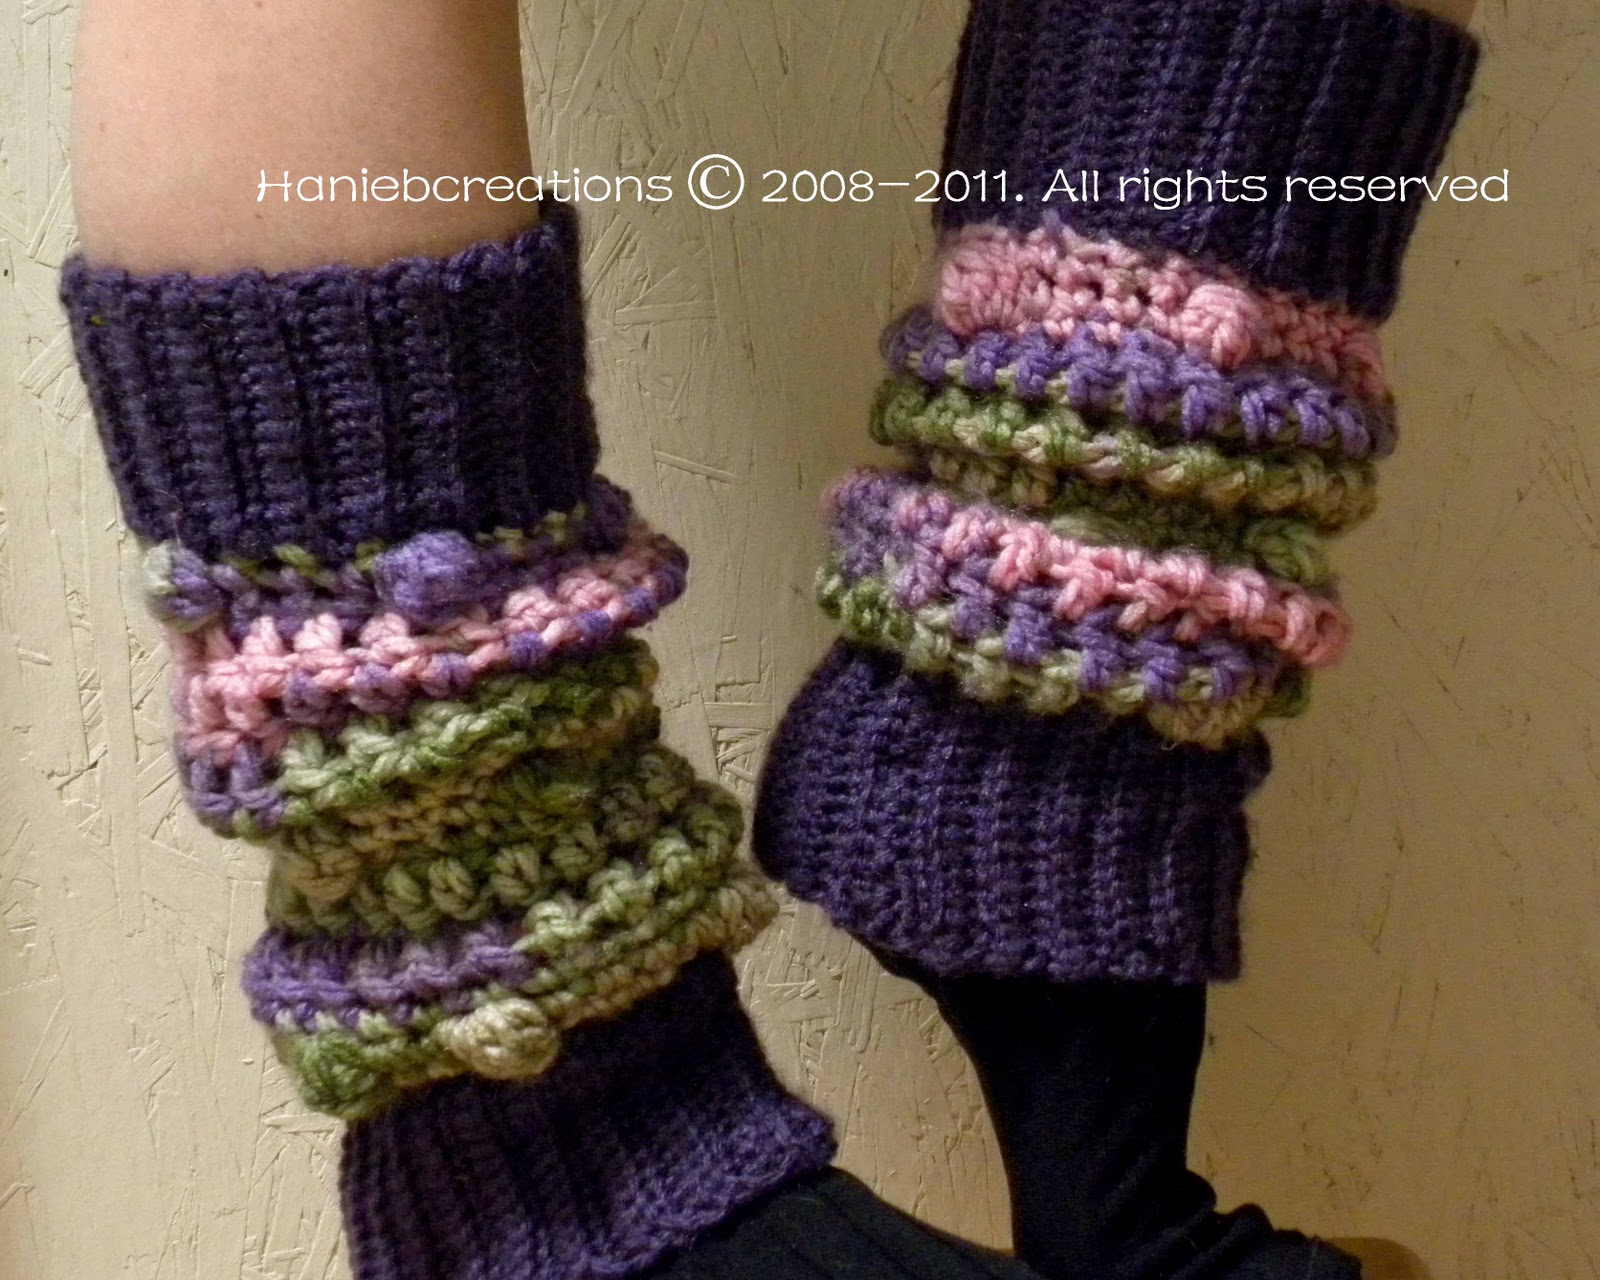 Free Printable Crochet Patterns For Leg Warmers : HanieBCreations: Leg Warmers Hand Crocheted Multi-Color Design